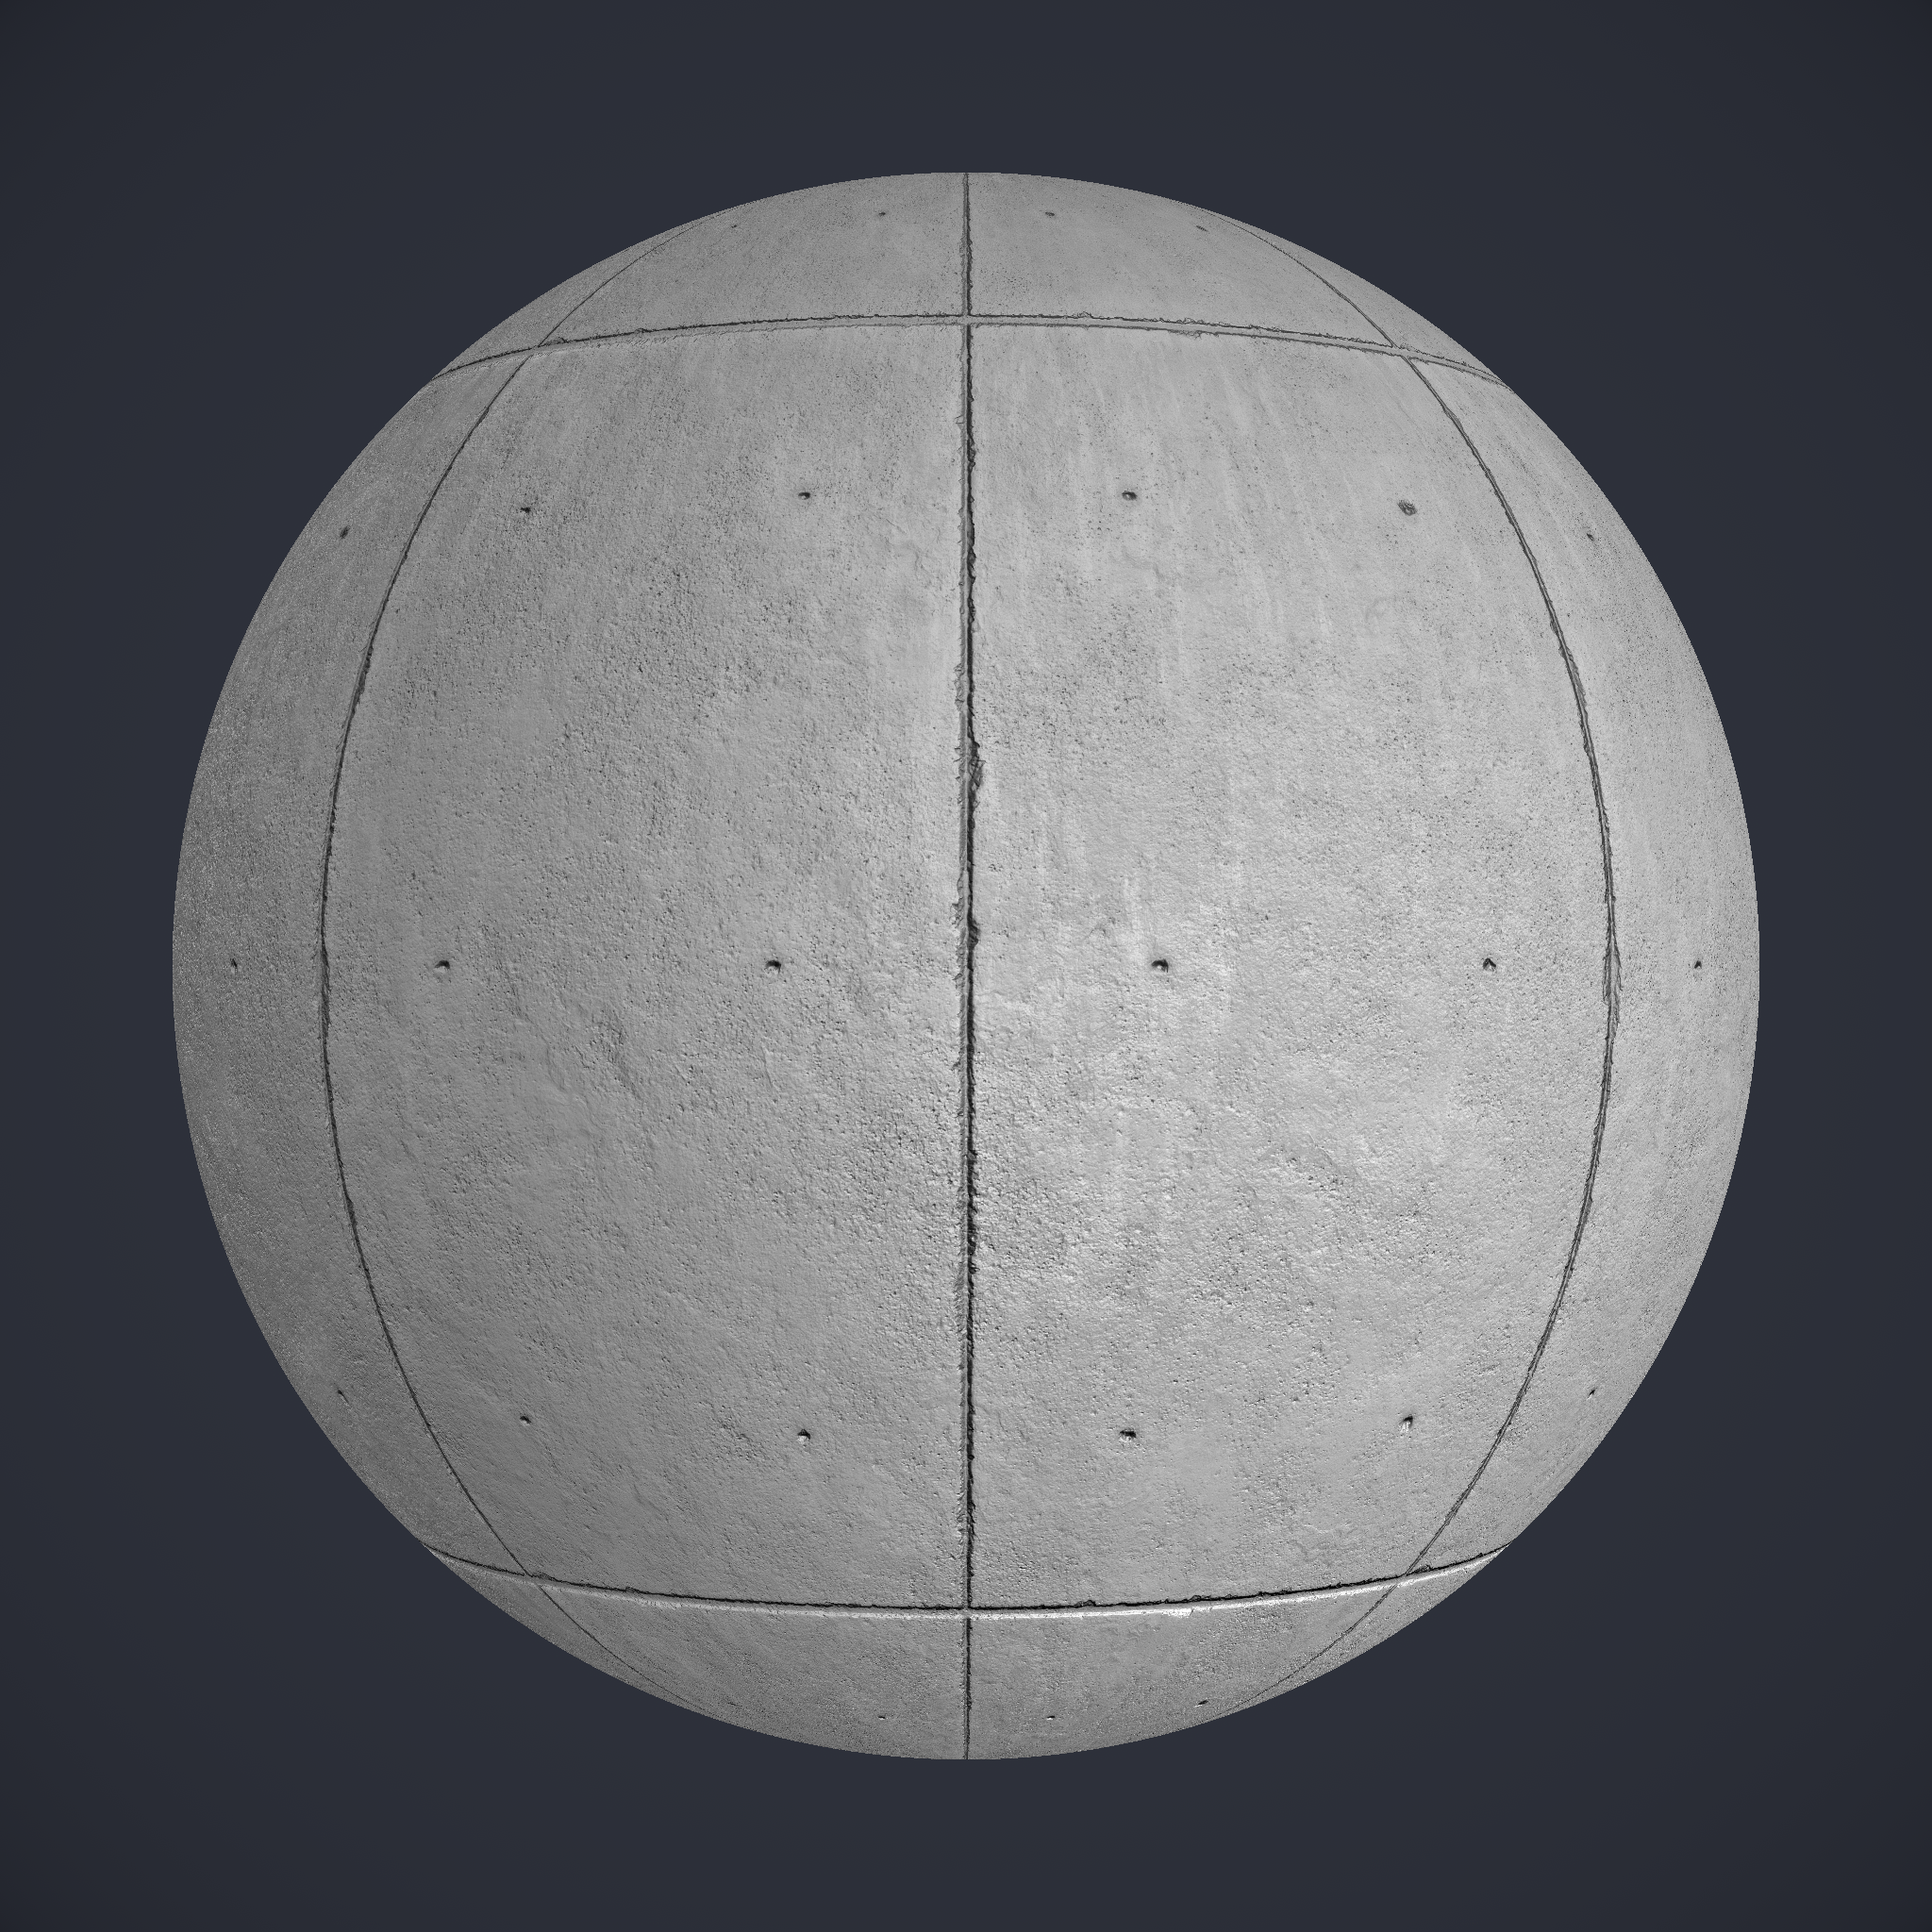 concrete_wall_04_render.png